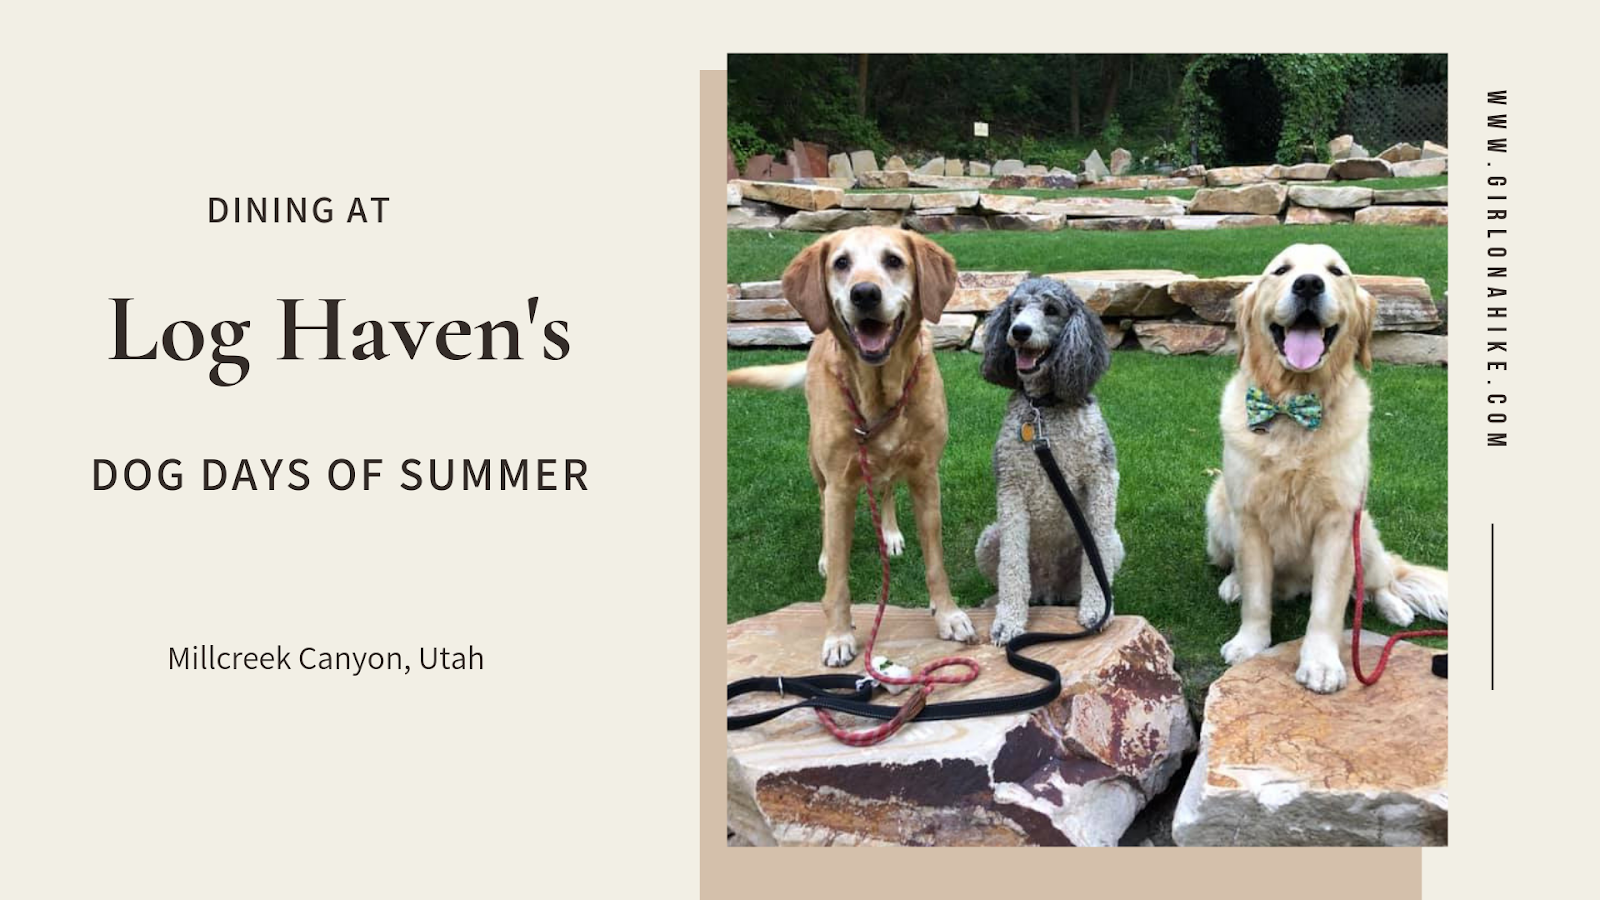 Dining at Log Haven's Dog Days of Summer